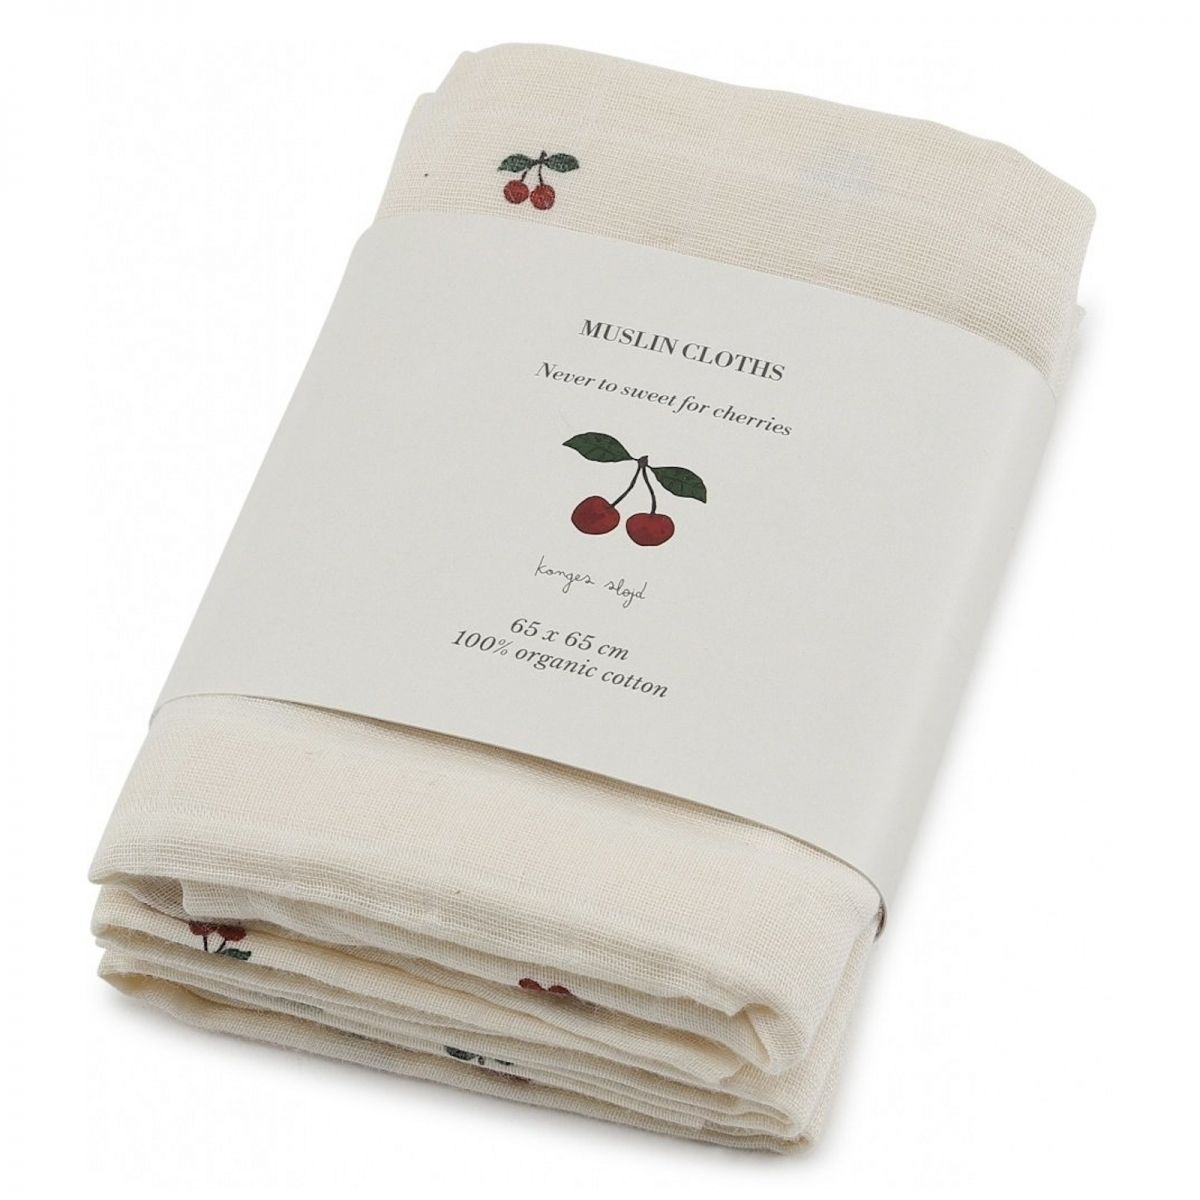 Konges Slojd 3 pack Muslin Cloth cherry